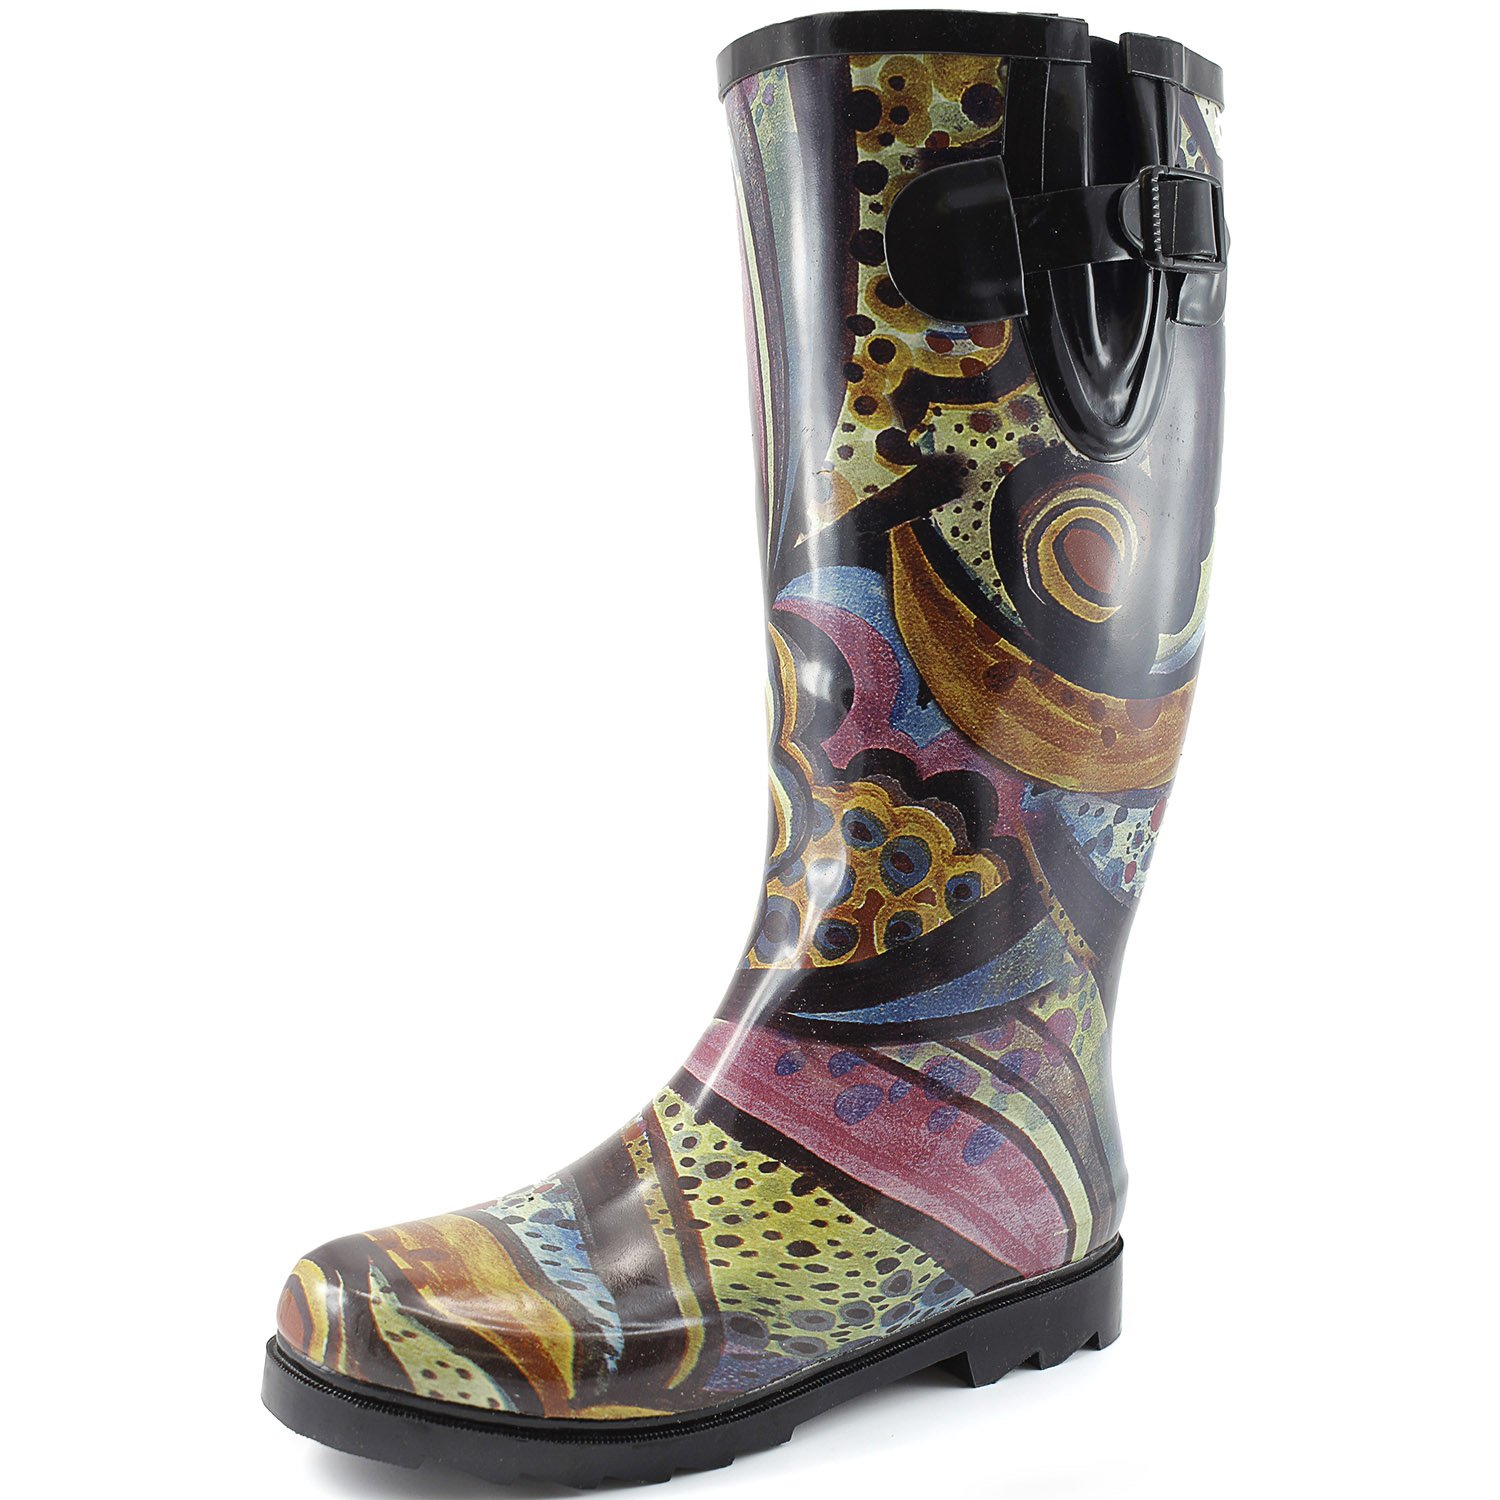 DailyShoes Women's Puddles Rain and Snow Boot Multi Color Mid Calf Knee High Rainboots,Monet 9 B(M) US